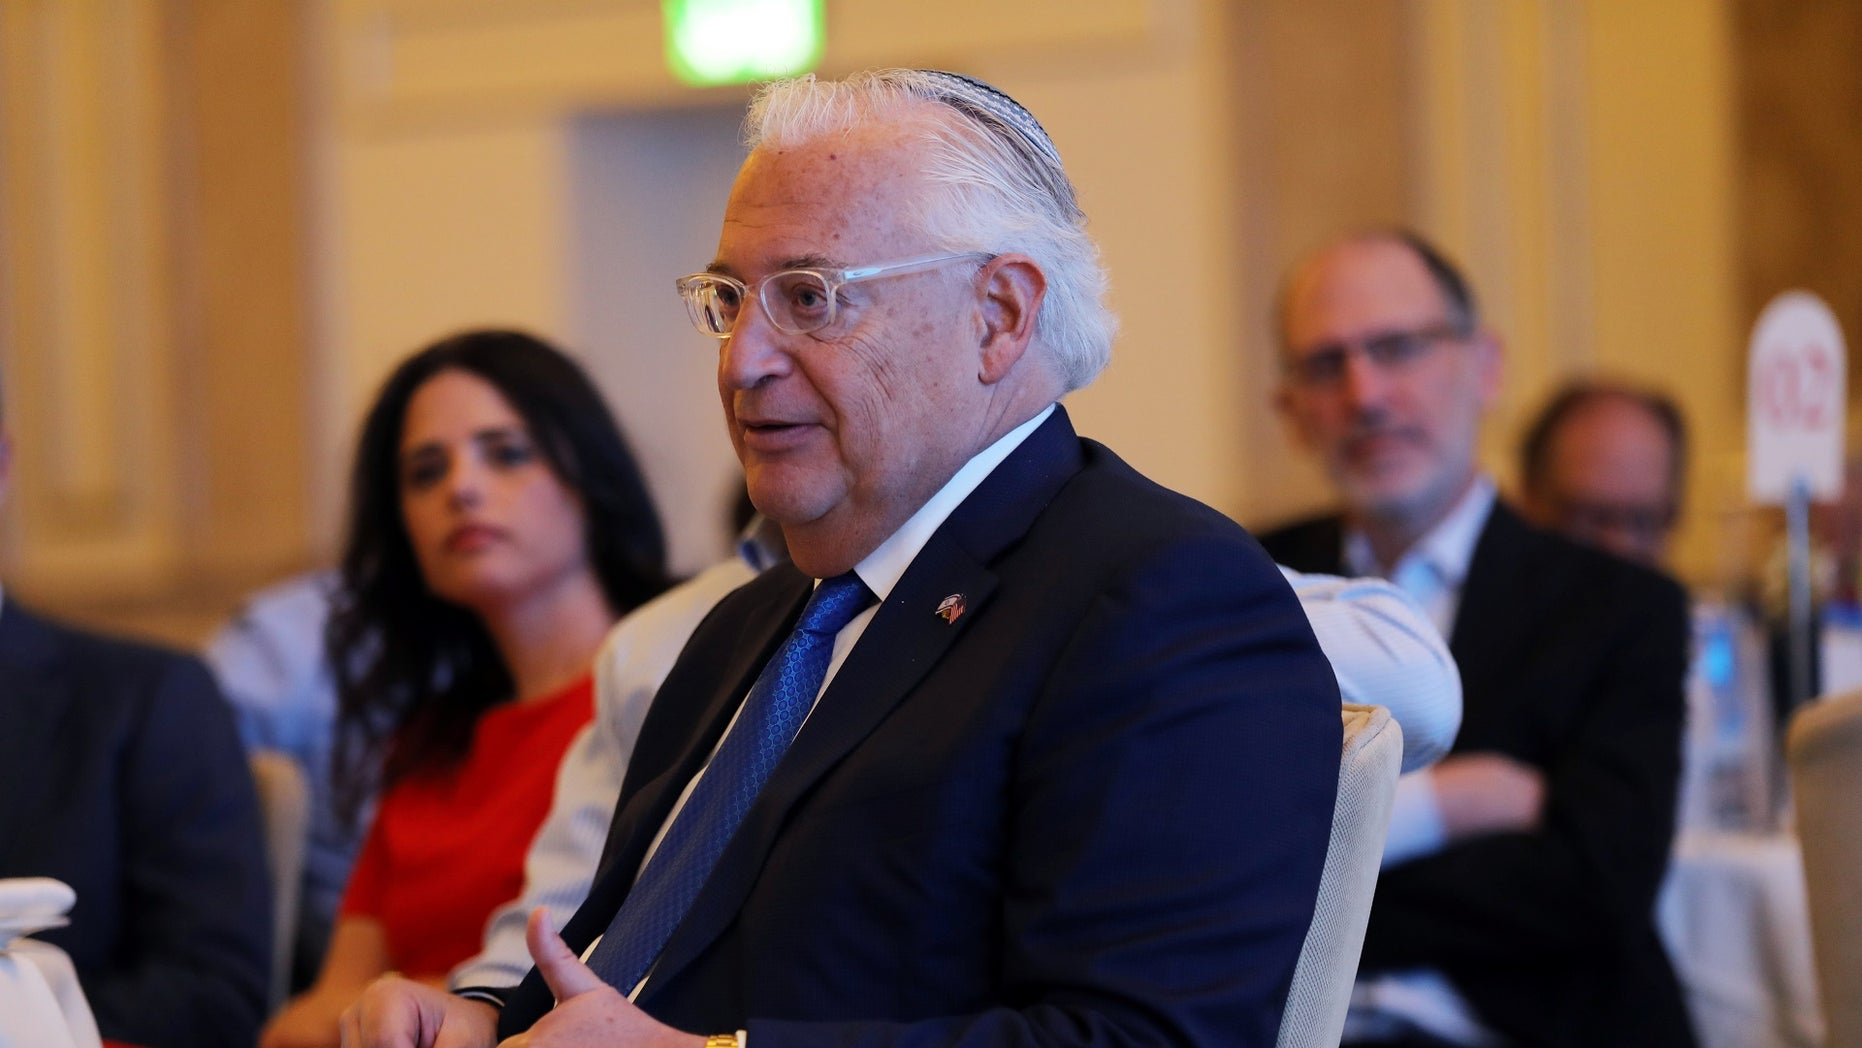 While a controversial pick, U.S. Ambassador to Israel David Friedman was the first of Trump's foreign emissaries to be confirmed.